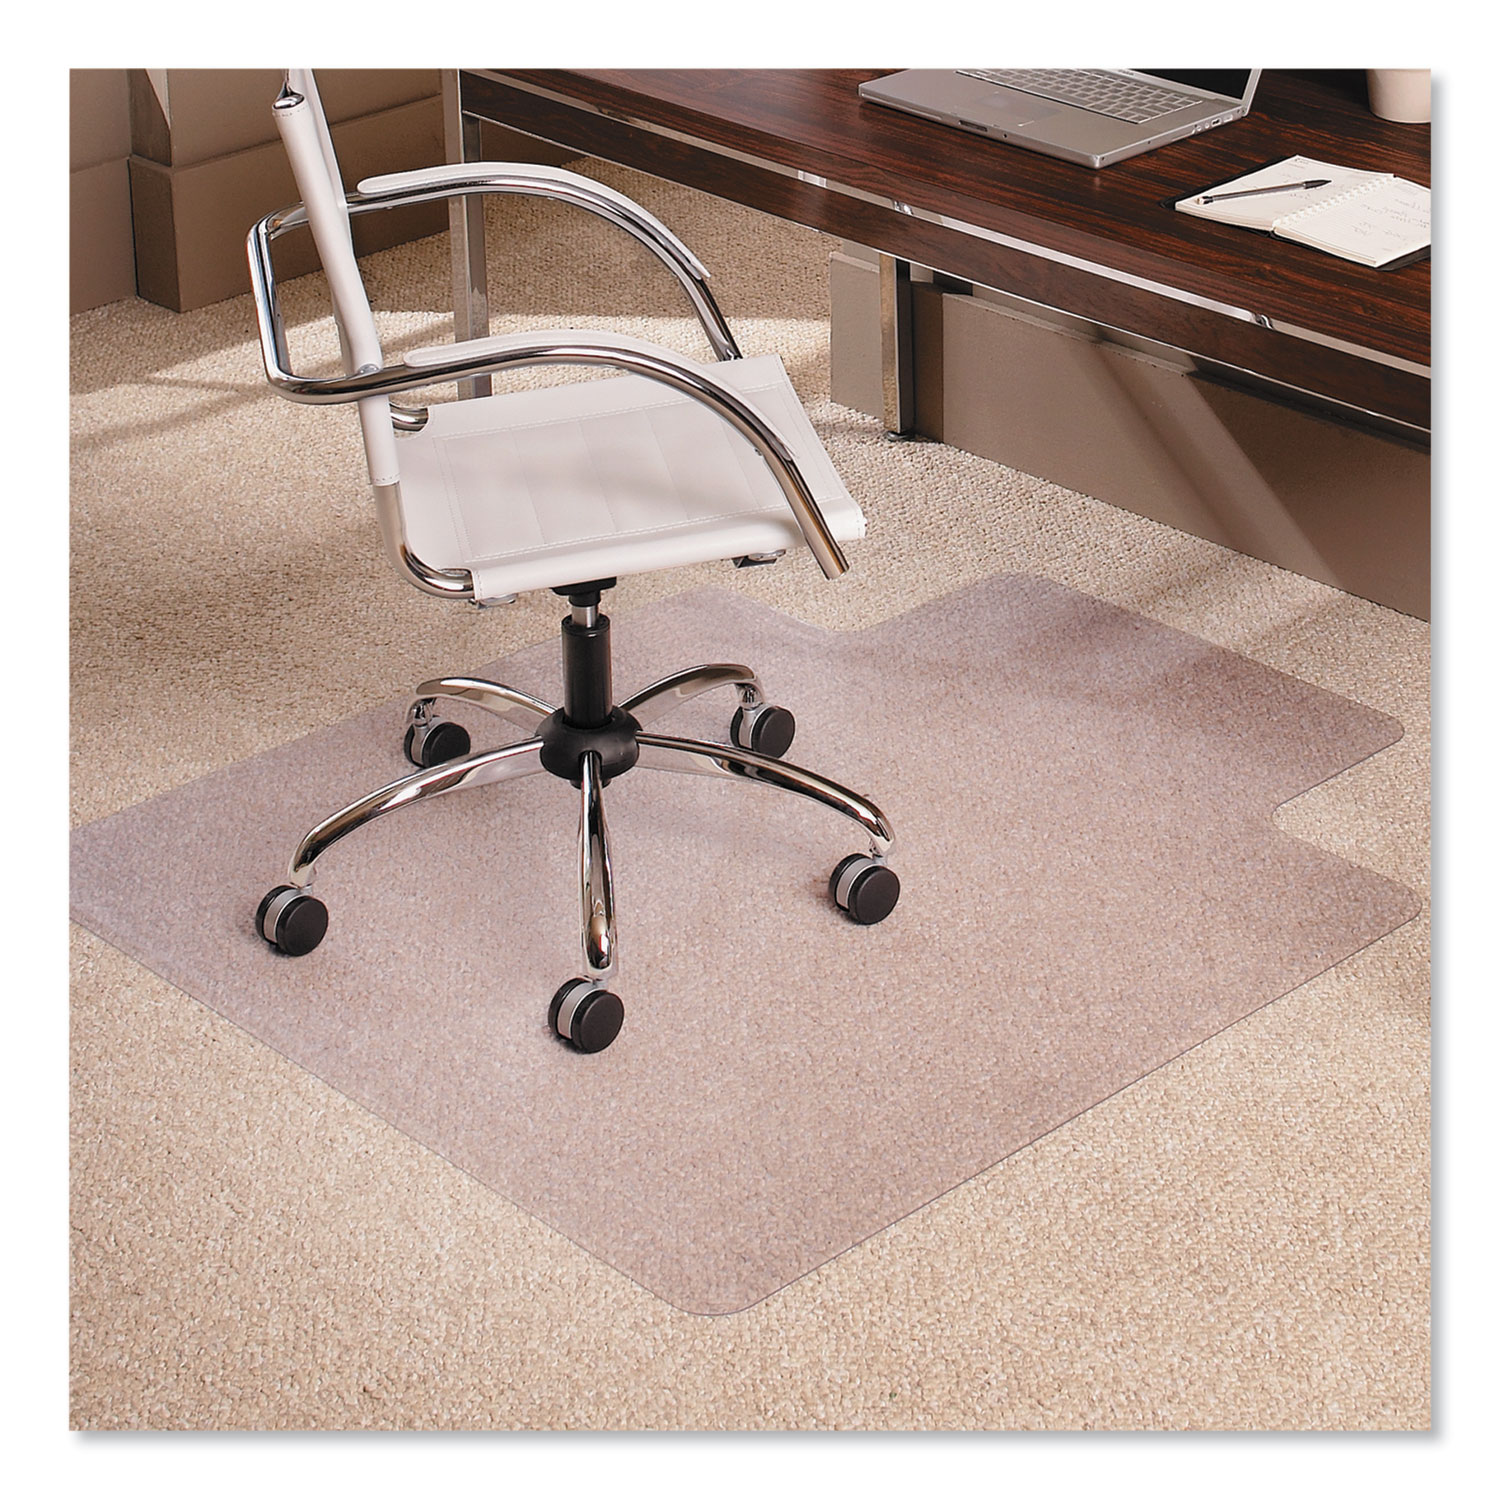 Chair Mats 46 x 60 with Lip for Carpeted Floors Premium Thickness 1//5